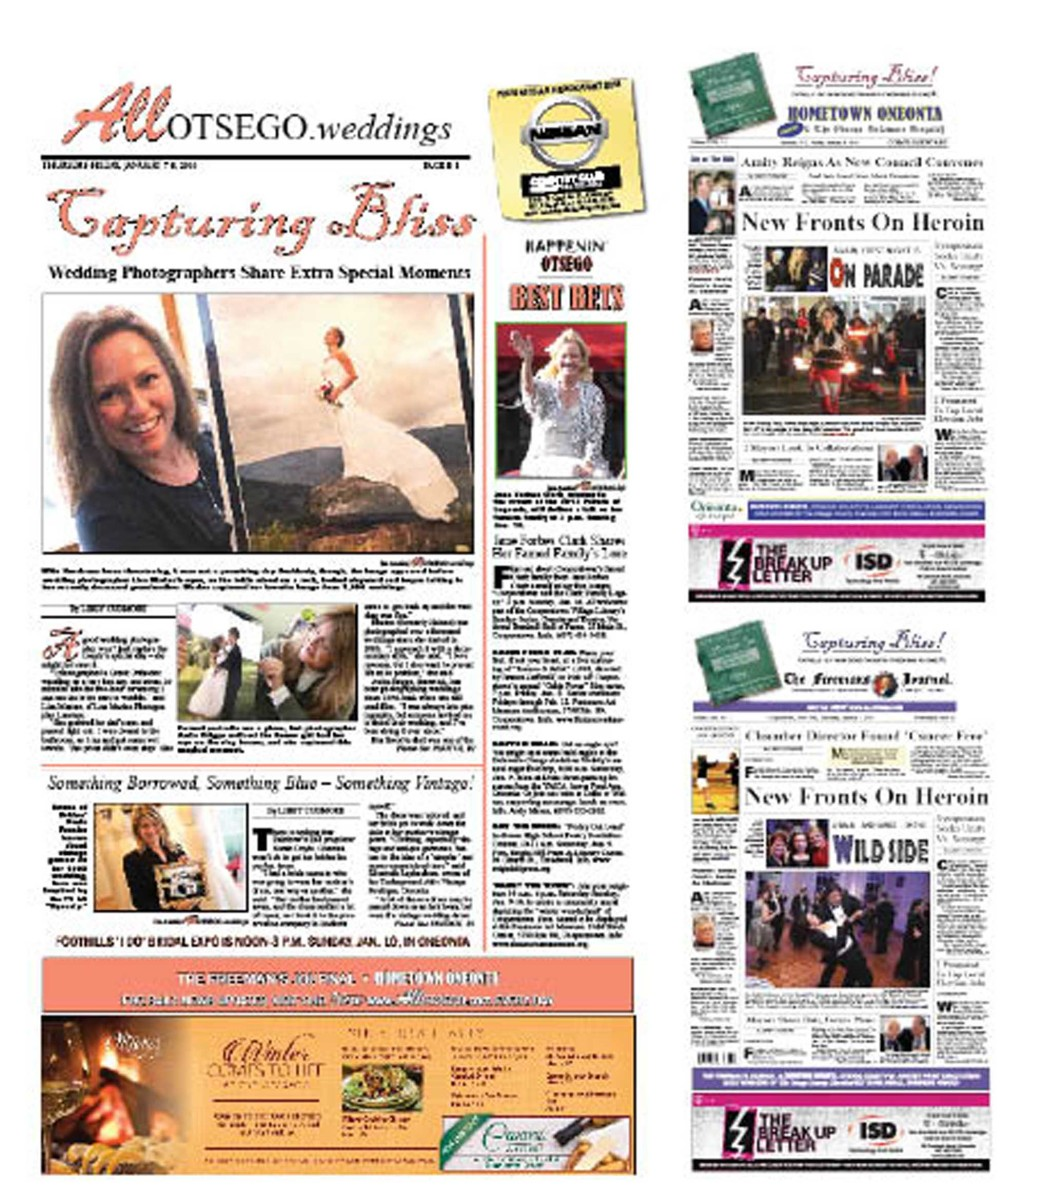 "Our newspapers' annual bridal section is in this week's Hometown Oneonta and The Freeman's Journal, so brides can preview ads by vendors at Foothills' ""I Do"" Bridal Show, the first of the year, noon-4 p.m. this Sunday in Oneonta. Also, reporter Libby Cudmore interviews wedding photographers about unforgettable moments, and on the trend toward vintage gowns. Hometown Oneonta includes a report on the first meeting of the new Common Council. And The Freeman's Journal includes a report on Cooperstown Chamber executive Matt Hazzard's 11-month ordeal with cancer; his doctors have now declared him cancer-free."